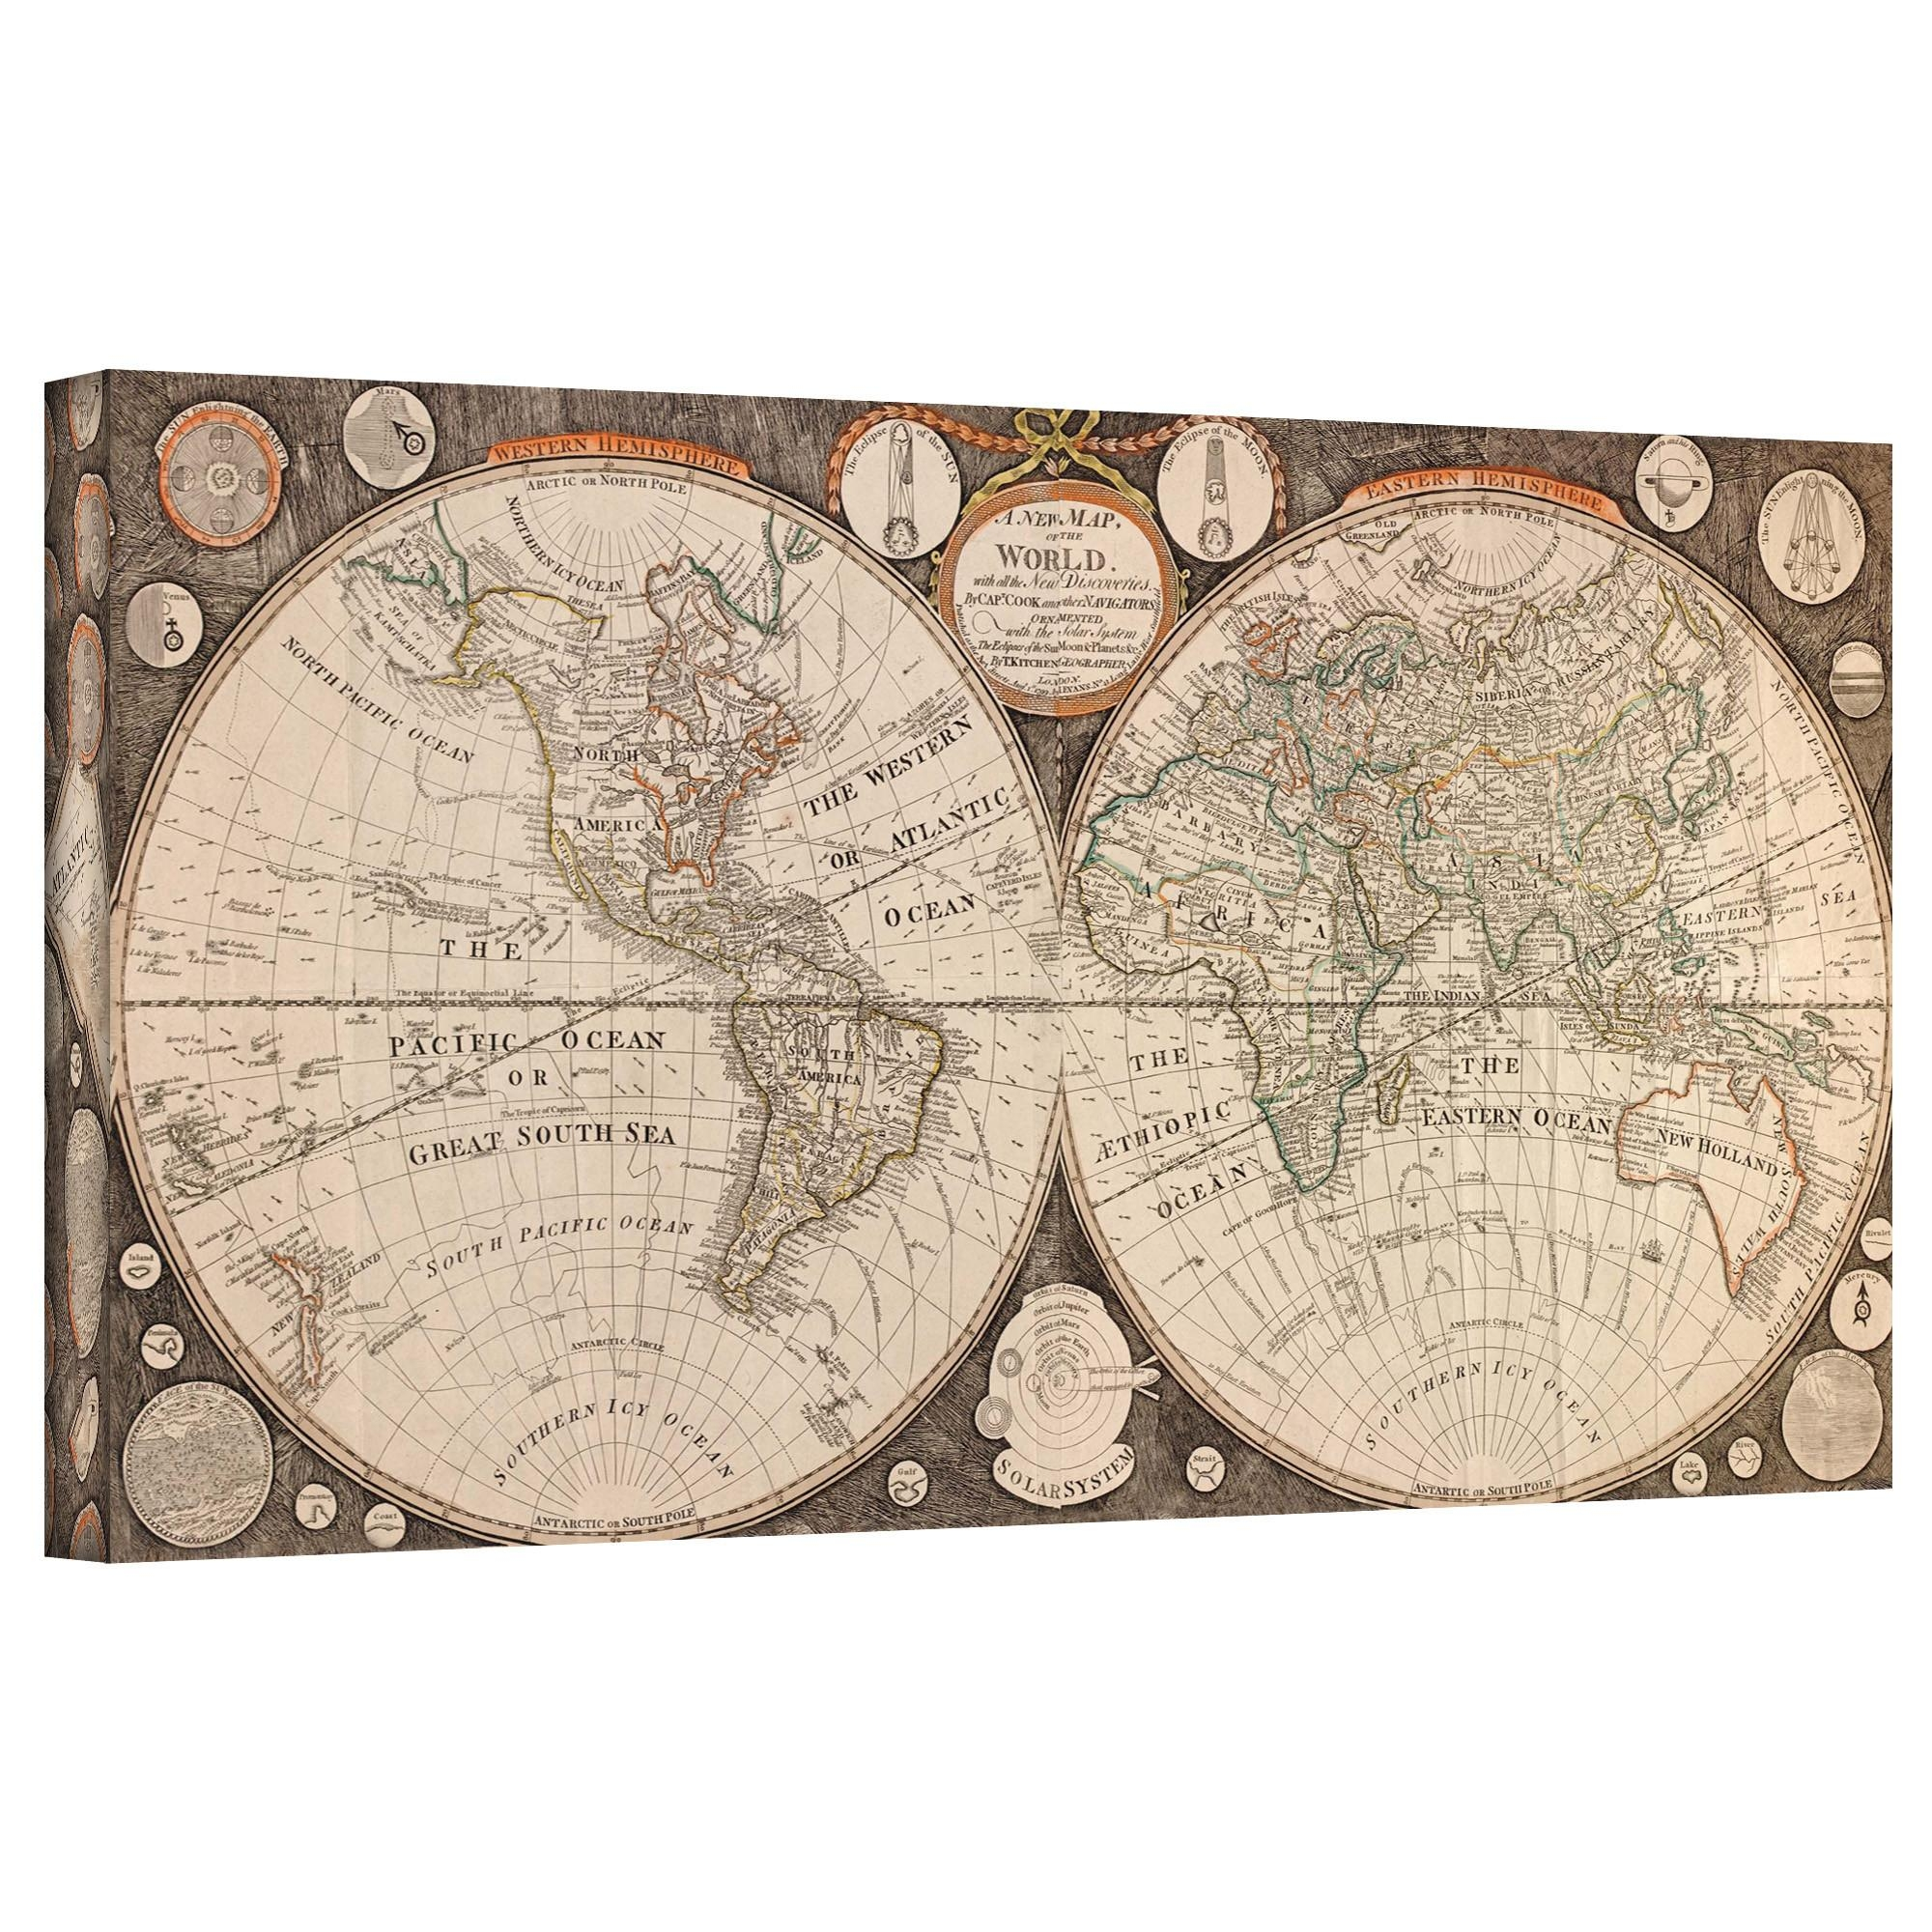 Wall Art Designs: Awesome Antique Map Wall Art Vintage World Map With Antique Map Wall Art (View 2 of 20)